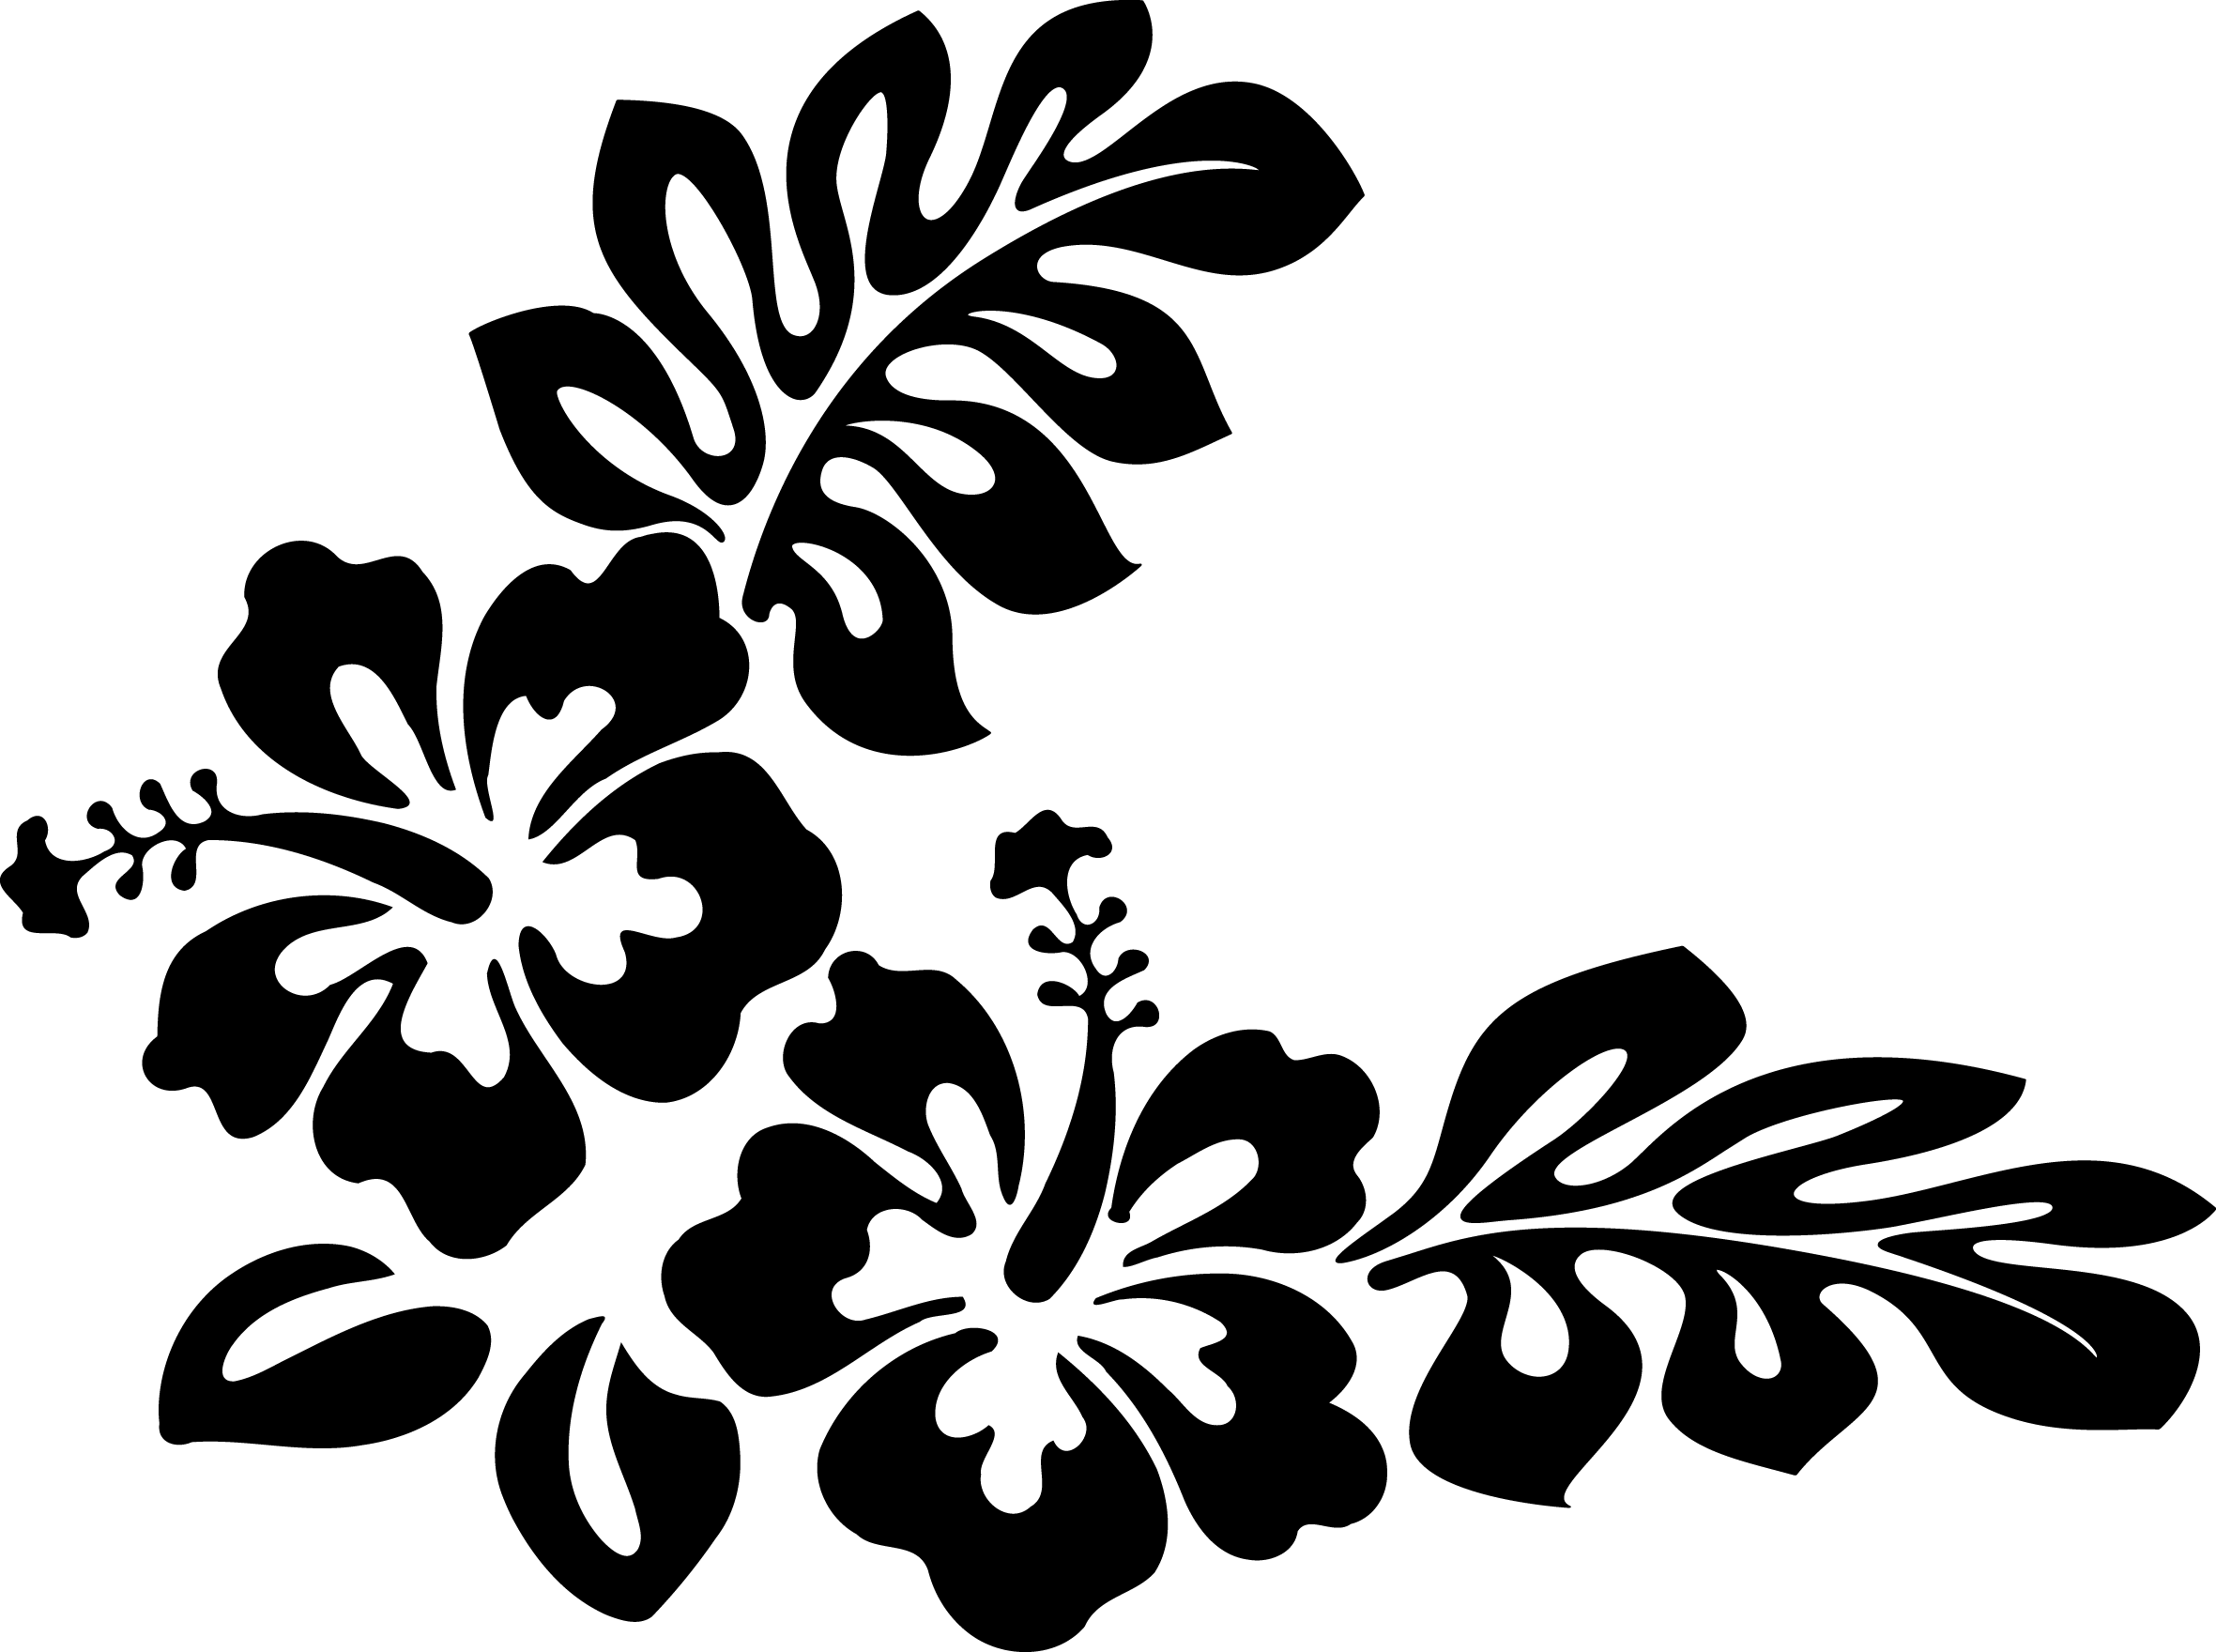 Bell Tower Clipart 20 Free Cliparts